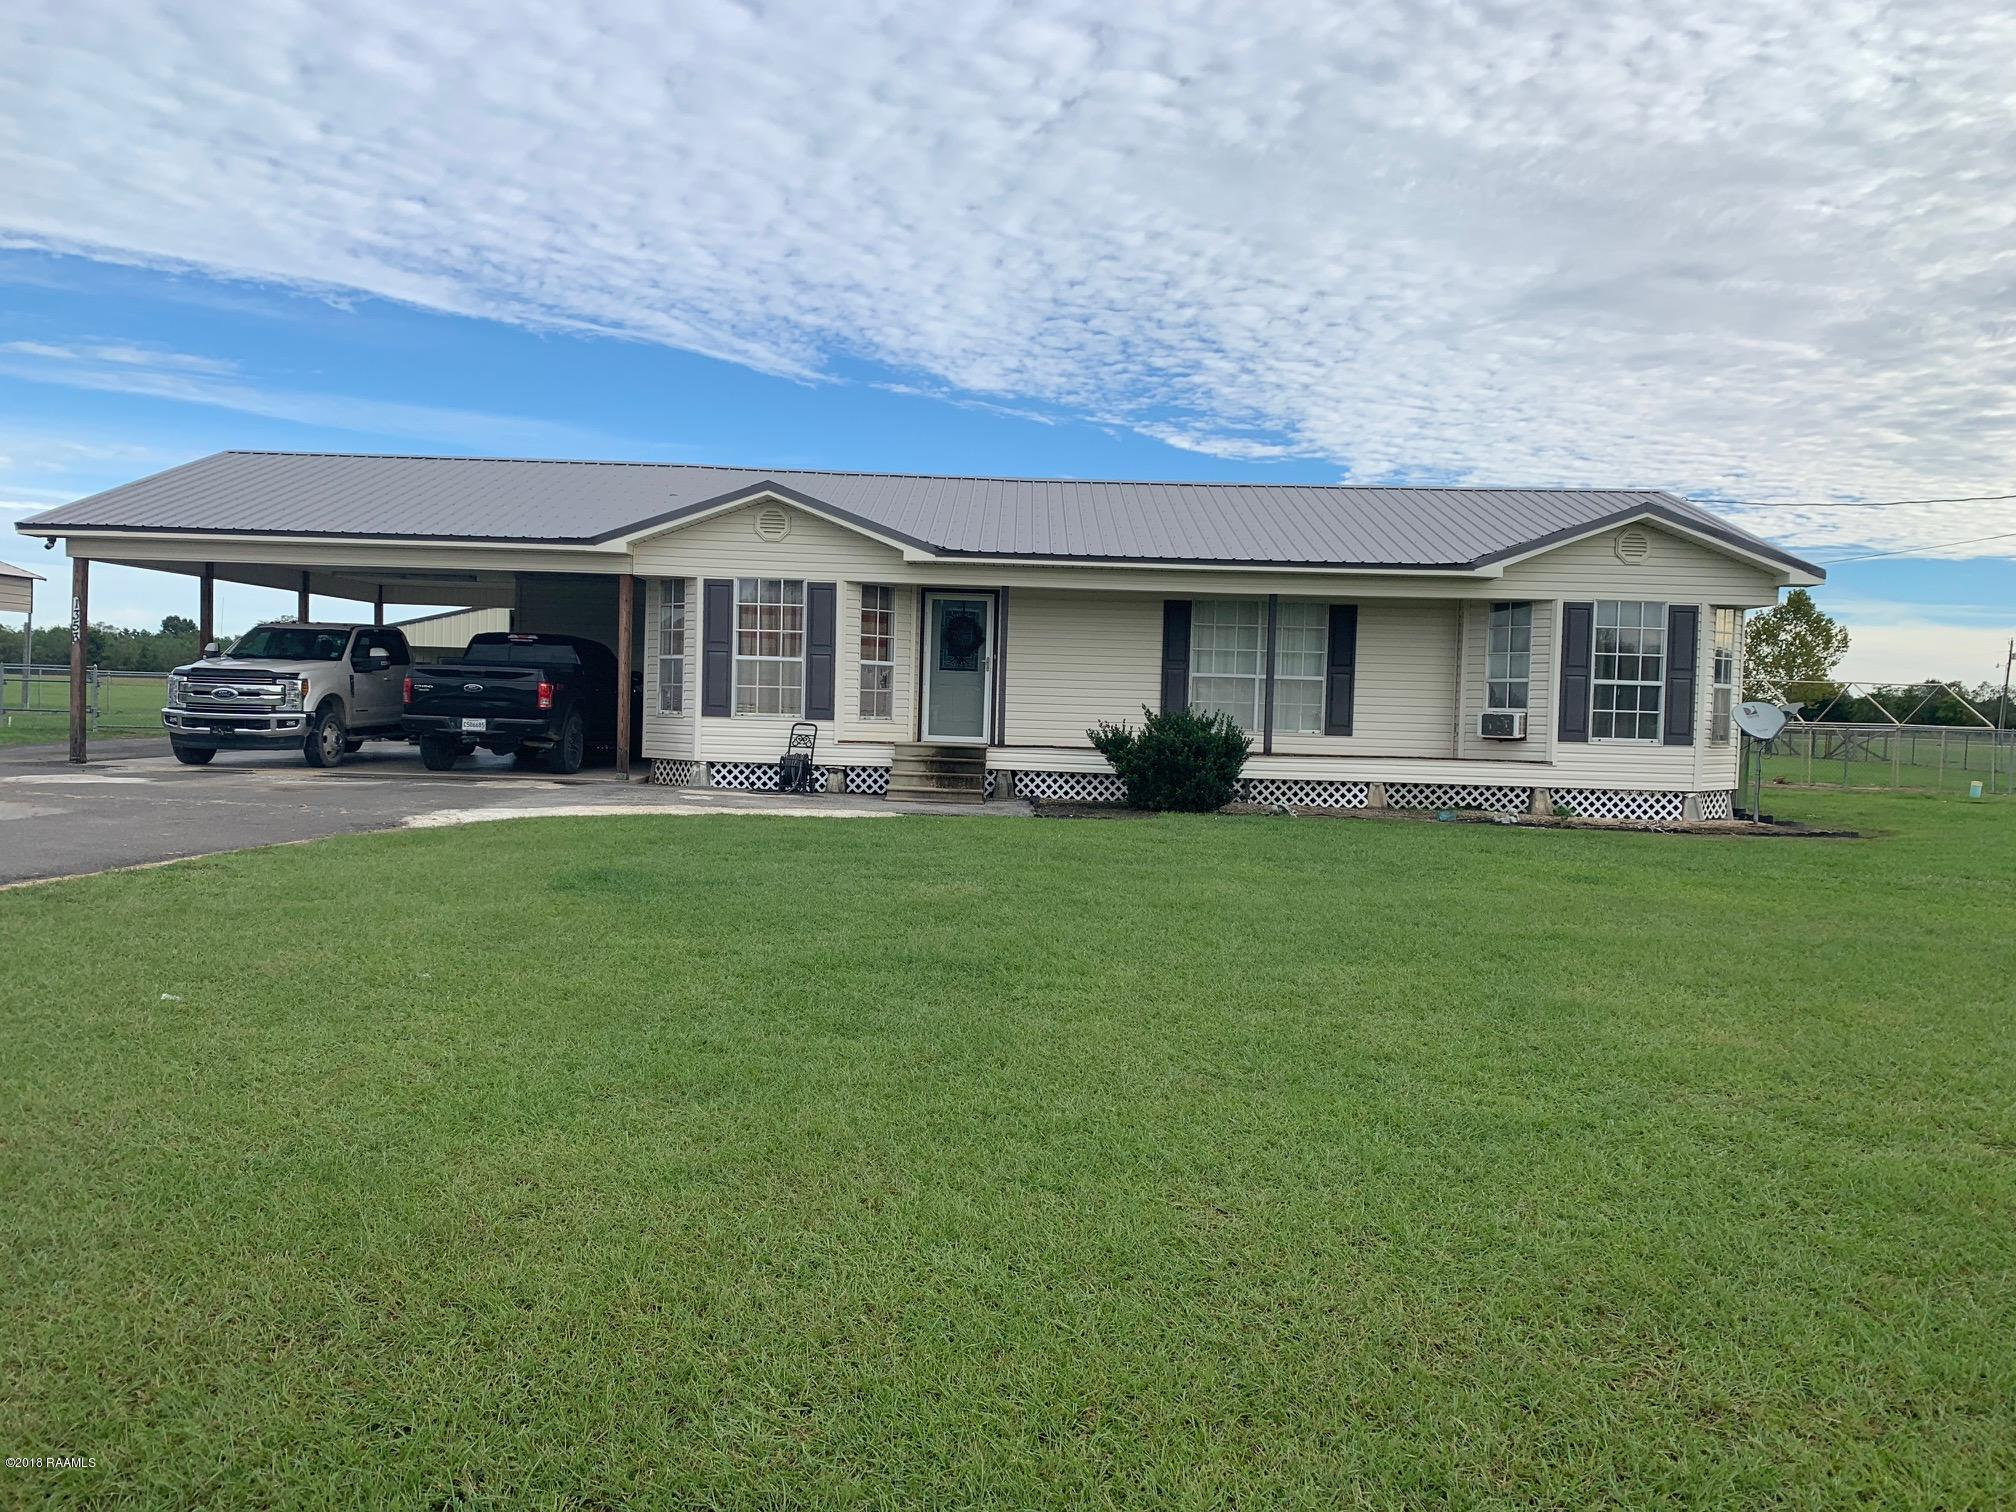 1353 Debaillon Plantation Road, Ville Platte, LA 70586 Photo #1